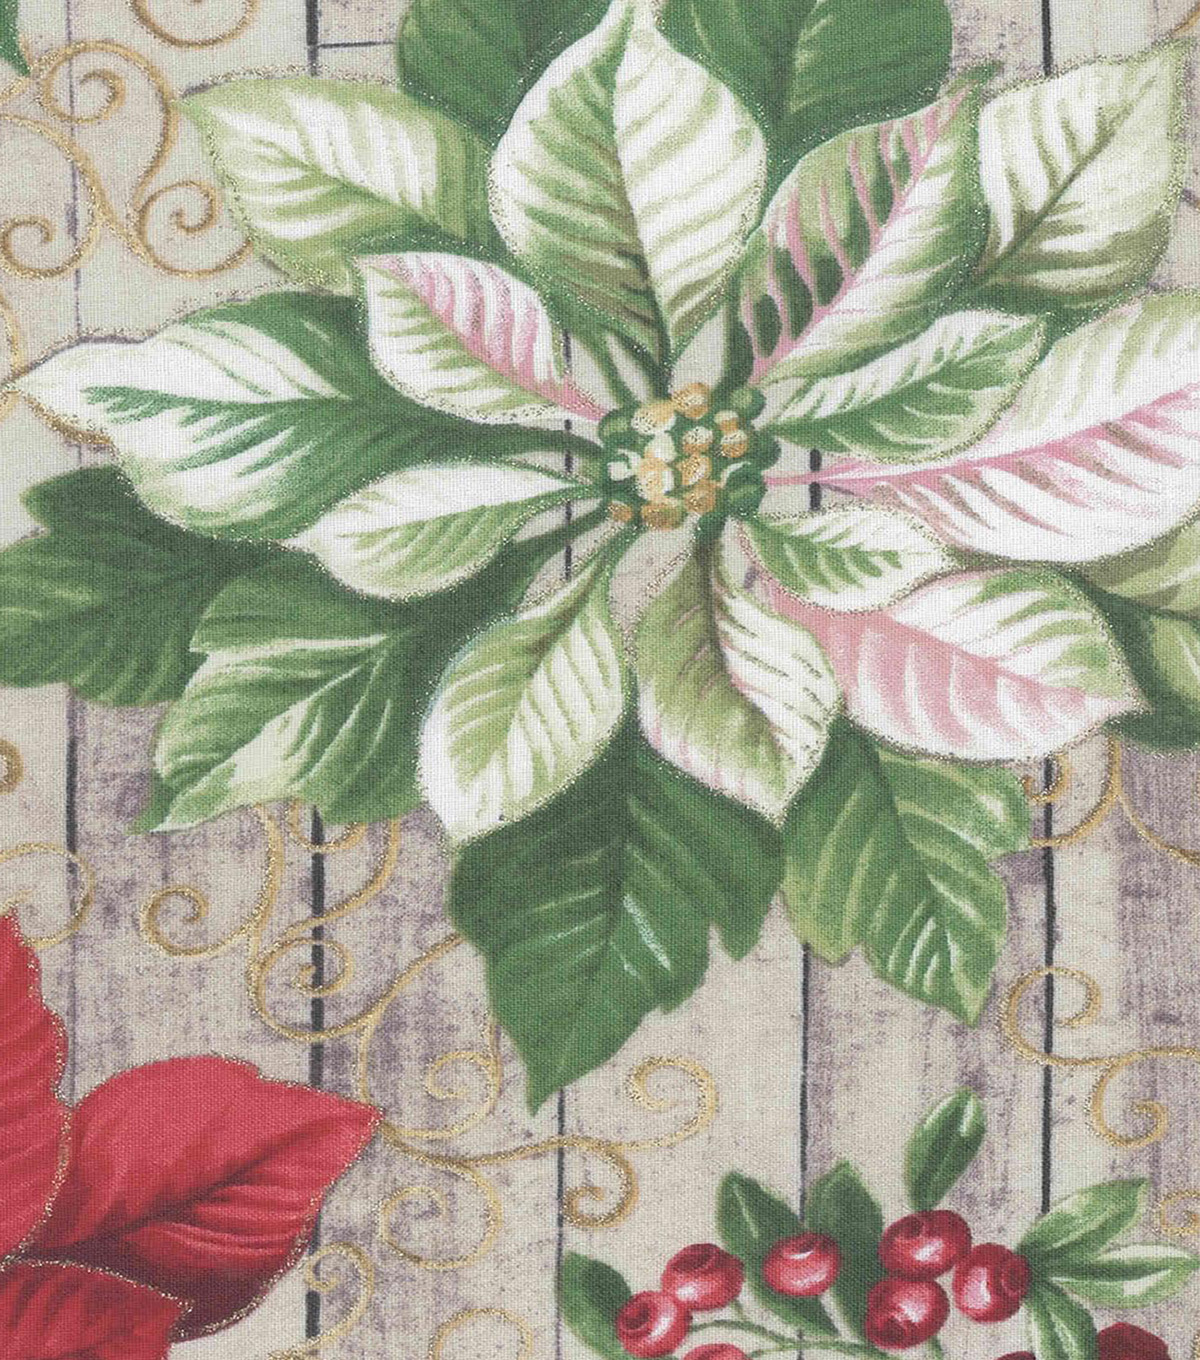 Christmas Cotton Fabric-Poinsettias & Holly with Glitter on Wood